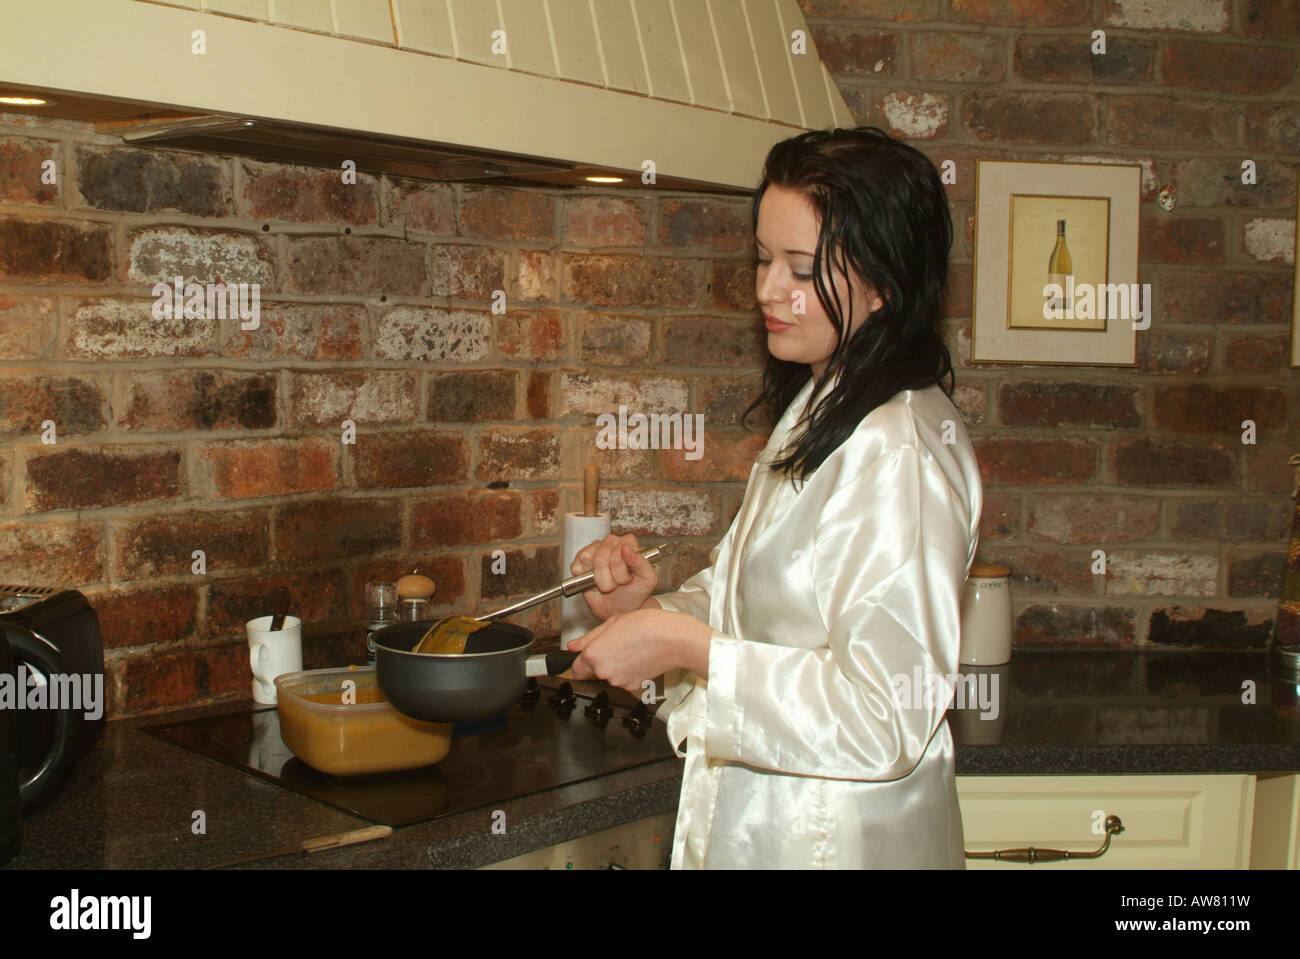 97df91e021 A girl in her twenties a white satin robe making breakfast in a farmhouse  kitchen